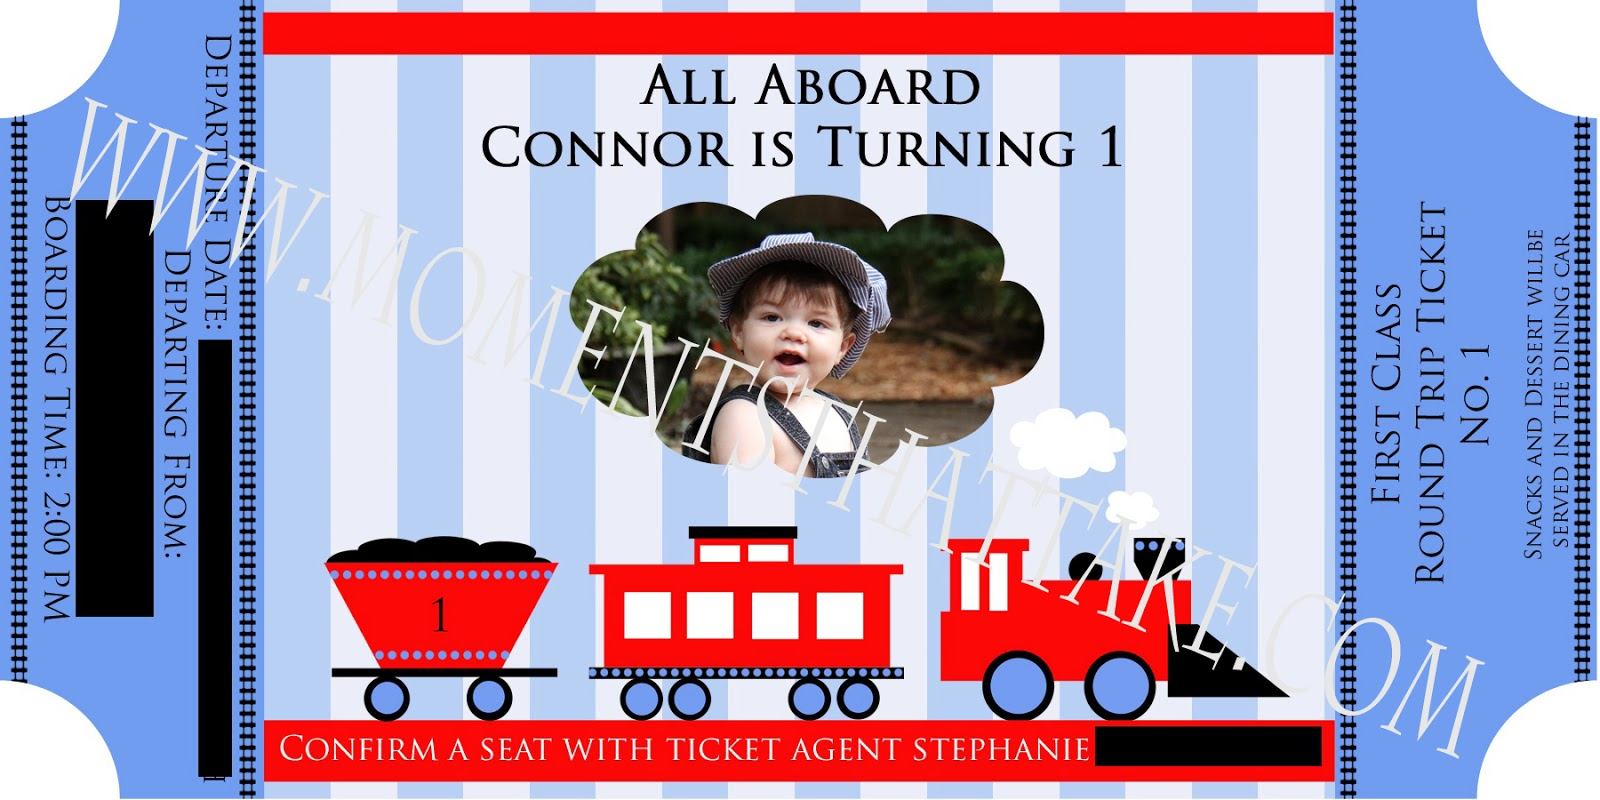 Moments that take my breath away train party connors 1st birthday if you are interested in a customized invitation email me at momentsthattakegmail and i can customize it for you to print yourself for a small fee solutioingenieria Image collections